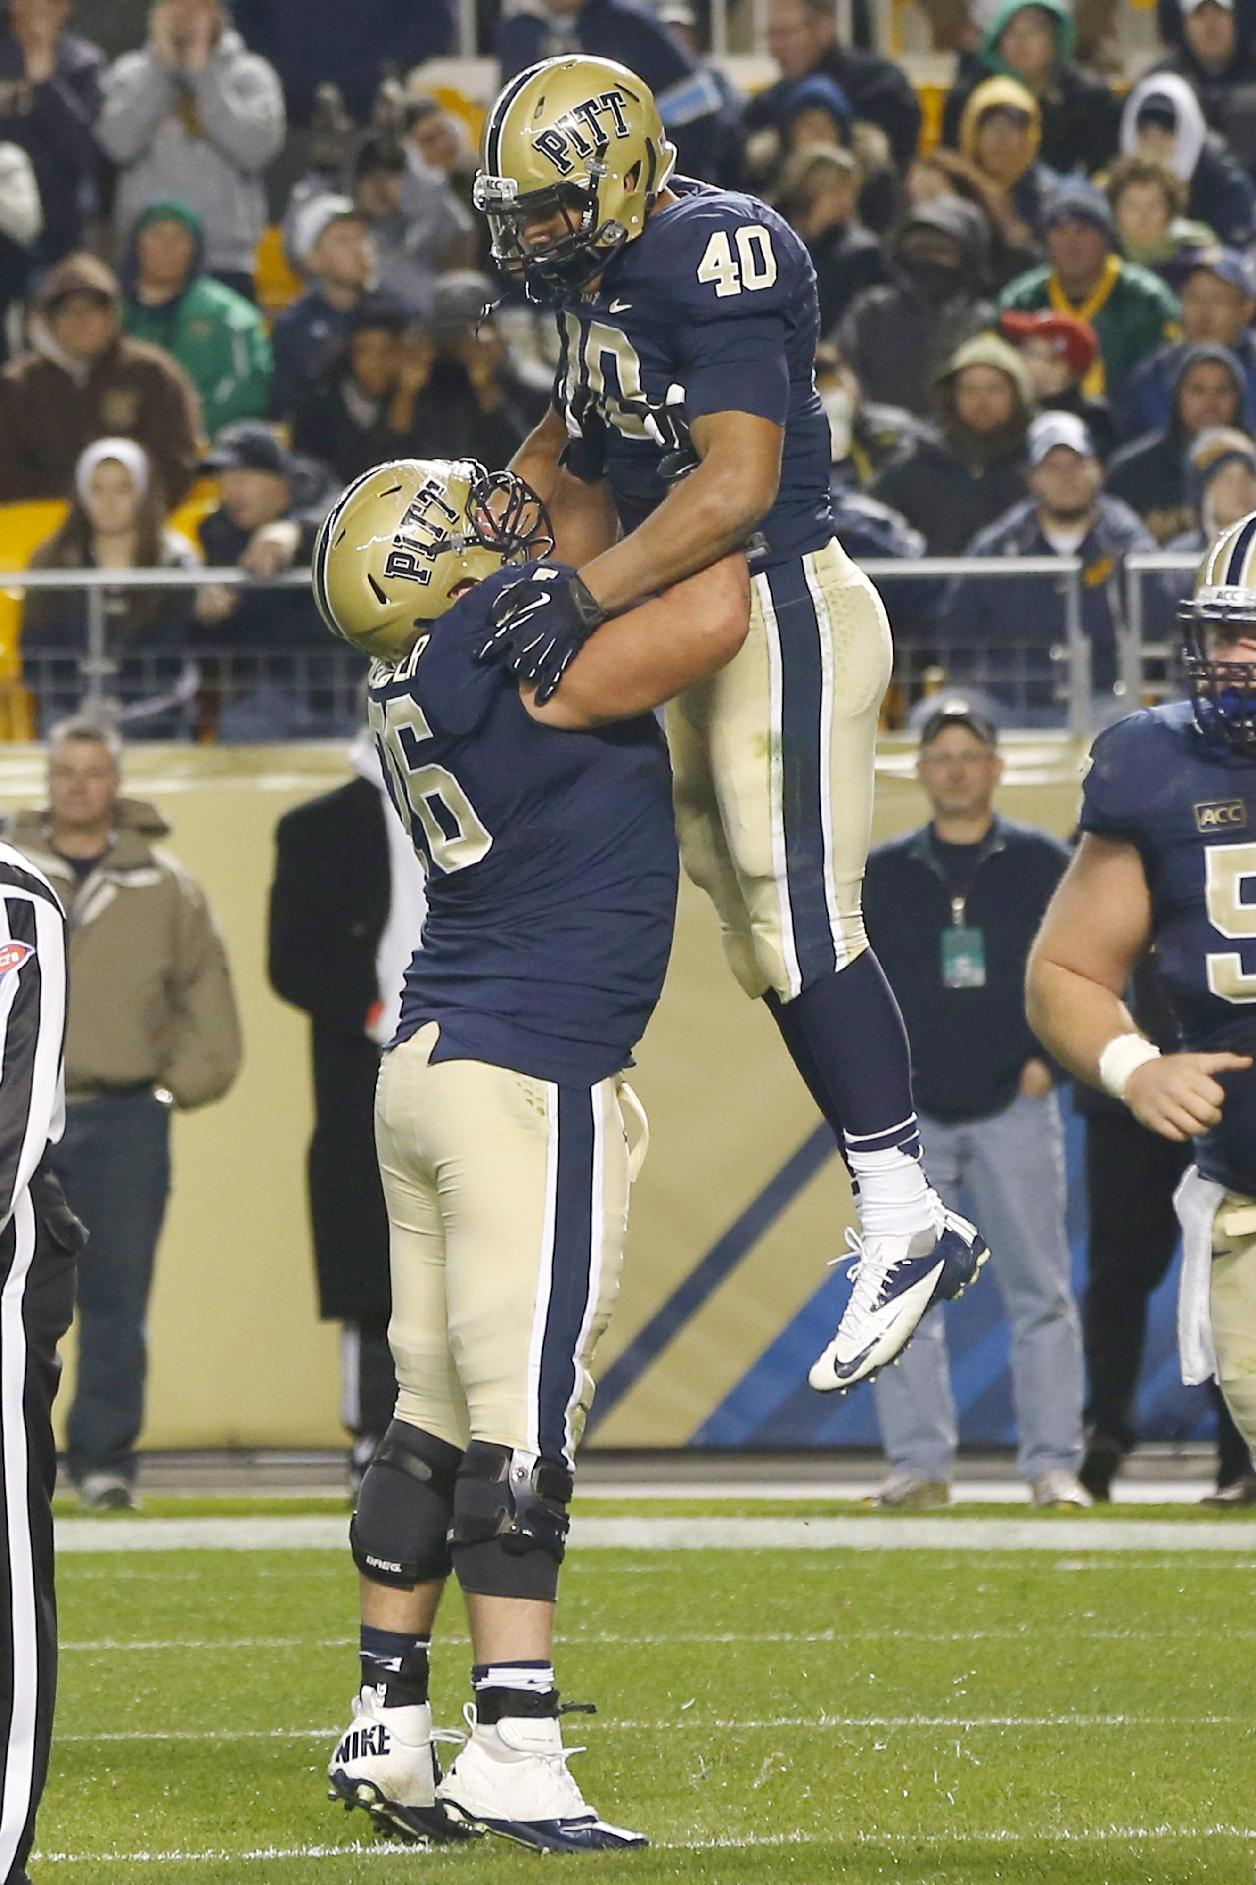 Pittsburgh running back James Conner (40) is lifted into the air by offensive linesman Ryan Schlieper (76) after scoring a touchdown in the third quarter of an NCAA college football game against Notre Dame on Saturday, Nov. 9, 2013, in Pittsburgh. Pittsburgh won 28-21